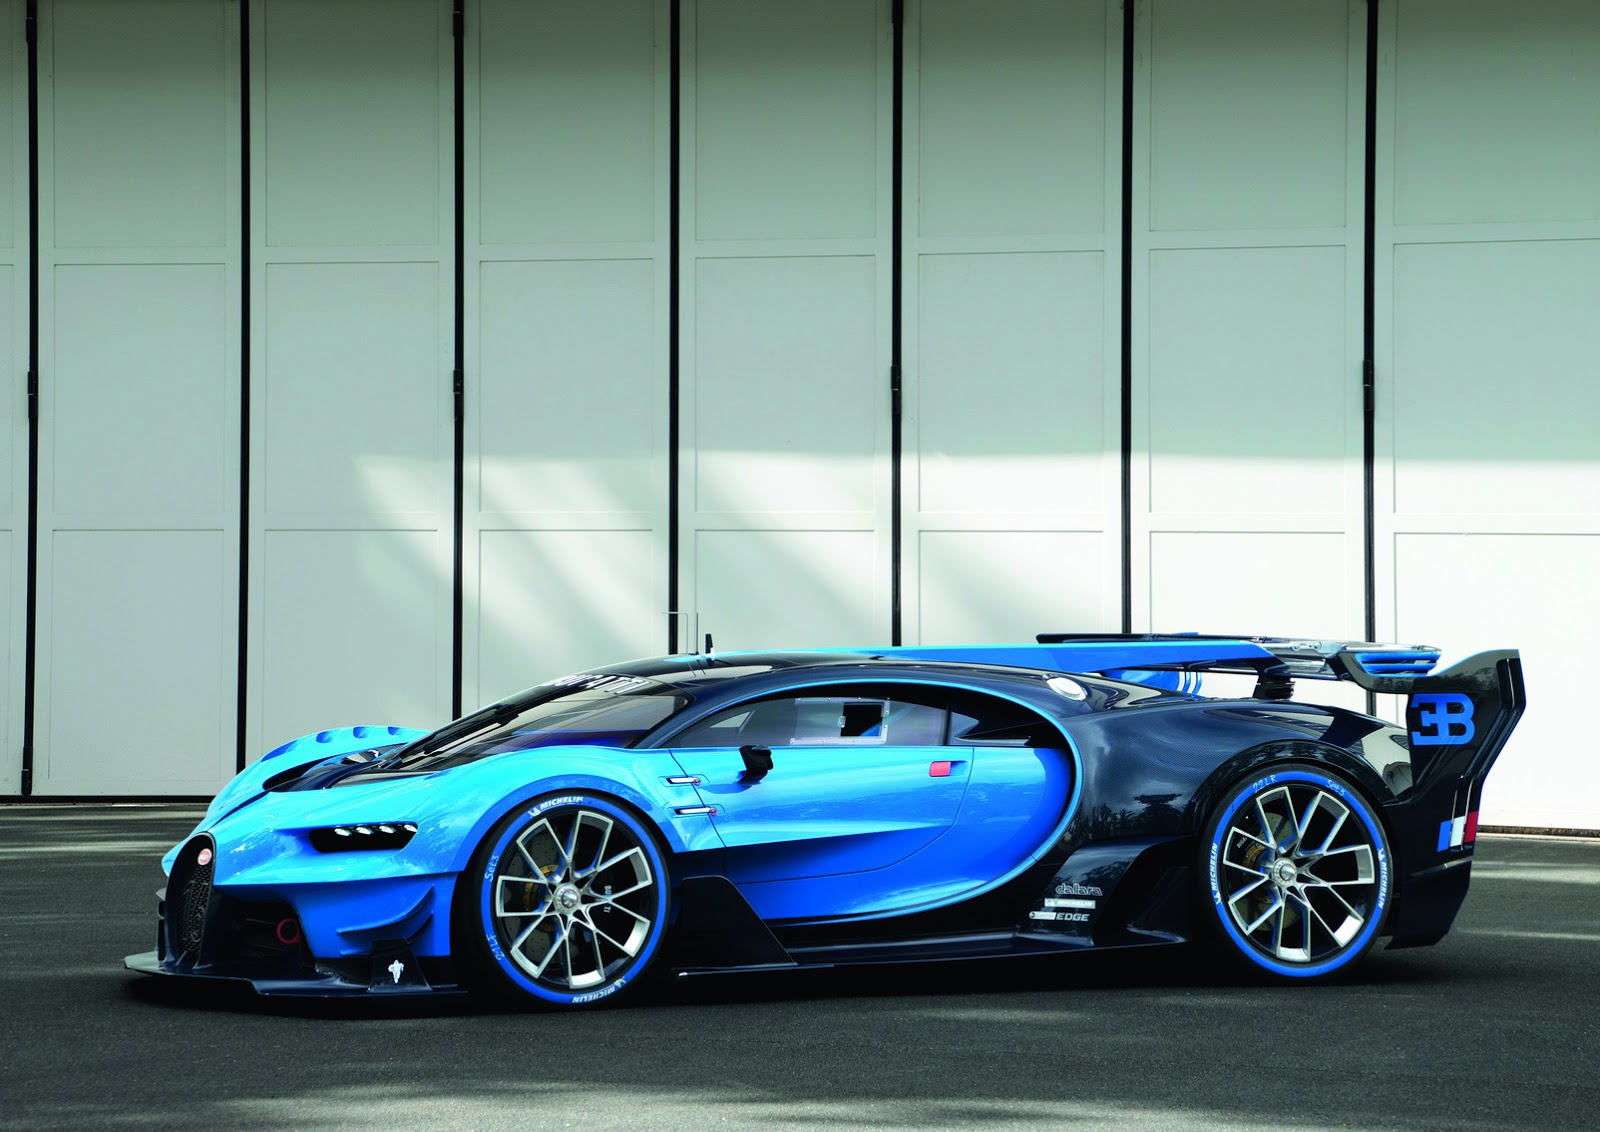 Limited-Edition Bugatti Model Unveiled at Closed-Door Event ...